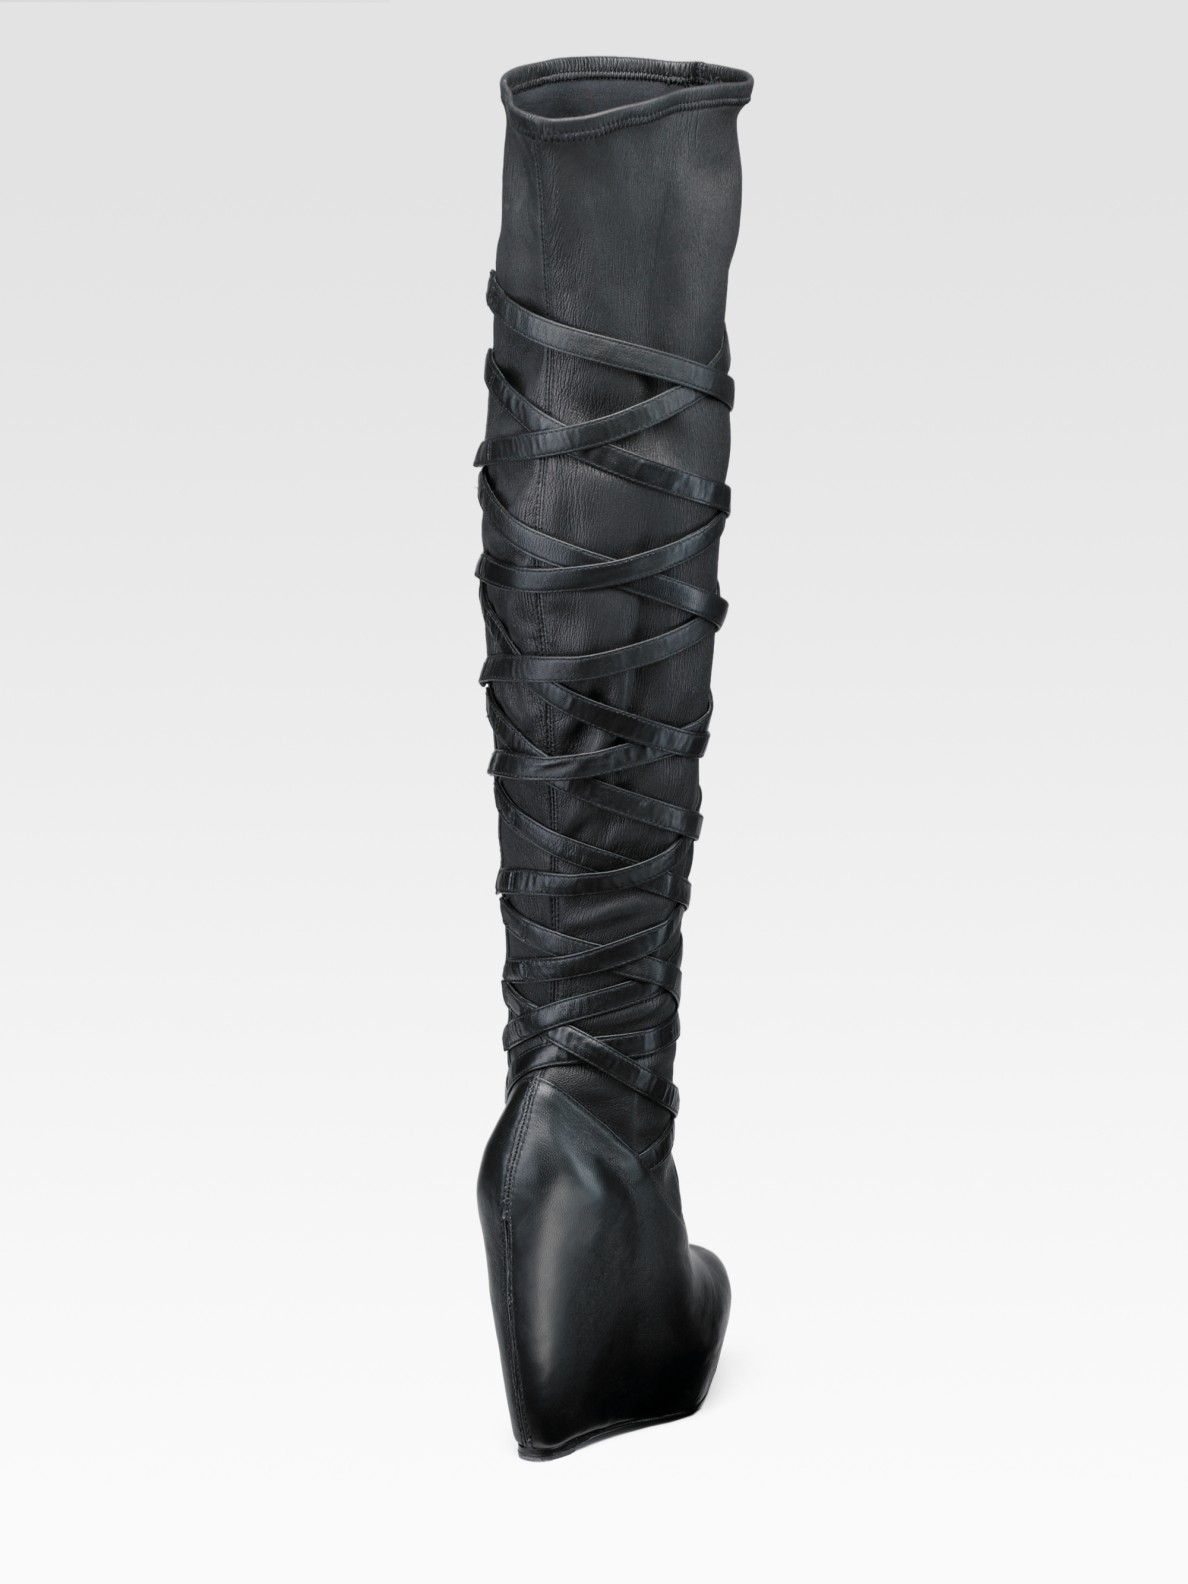 Elizabeth and james Wrapped-wedge Over-the-knee Boots in Black | Lyst